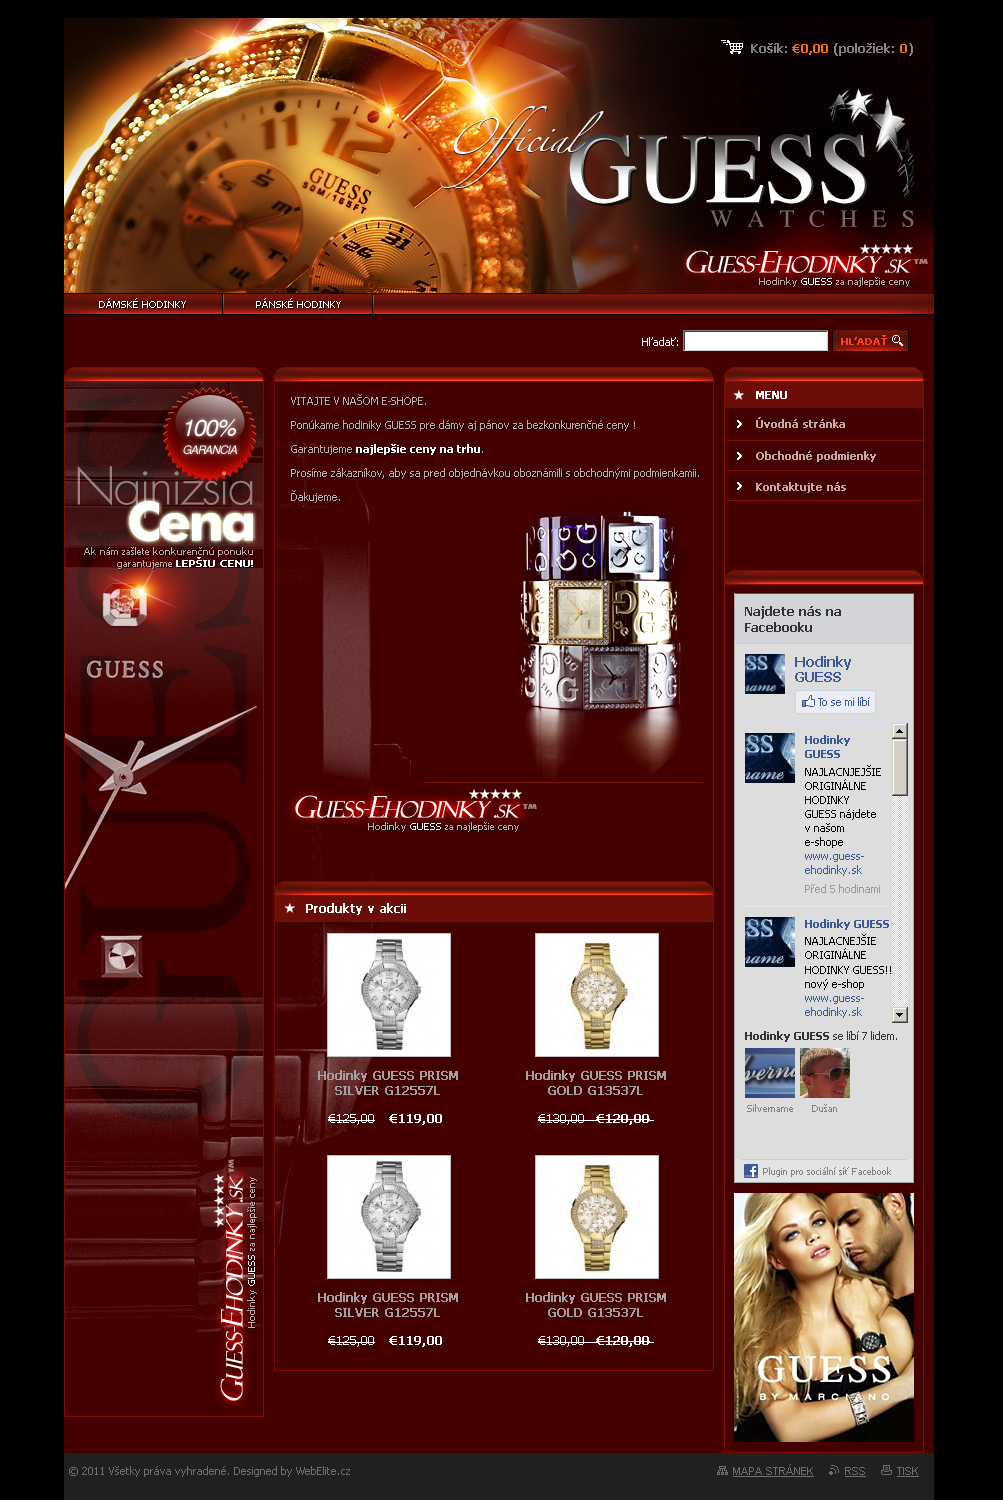 guess-watches-2